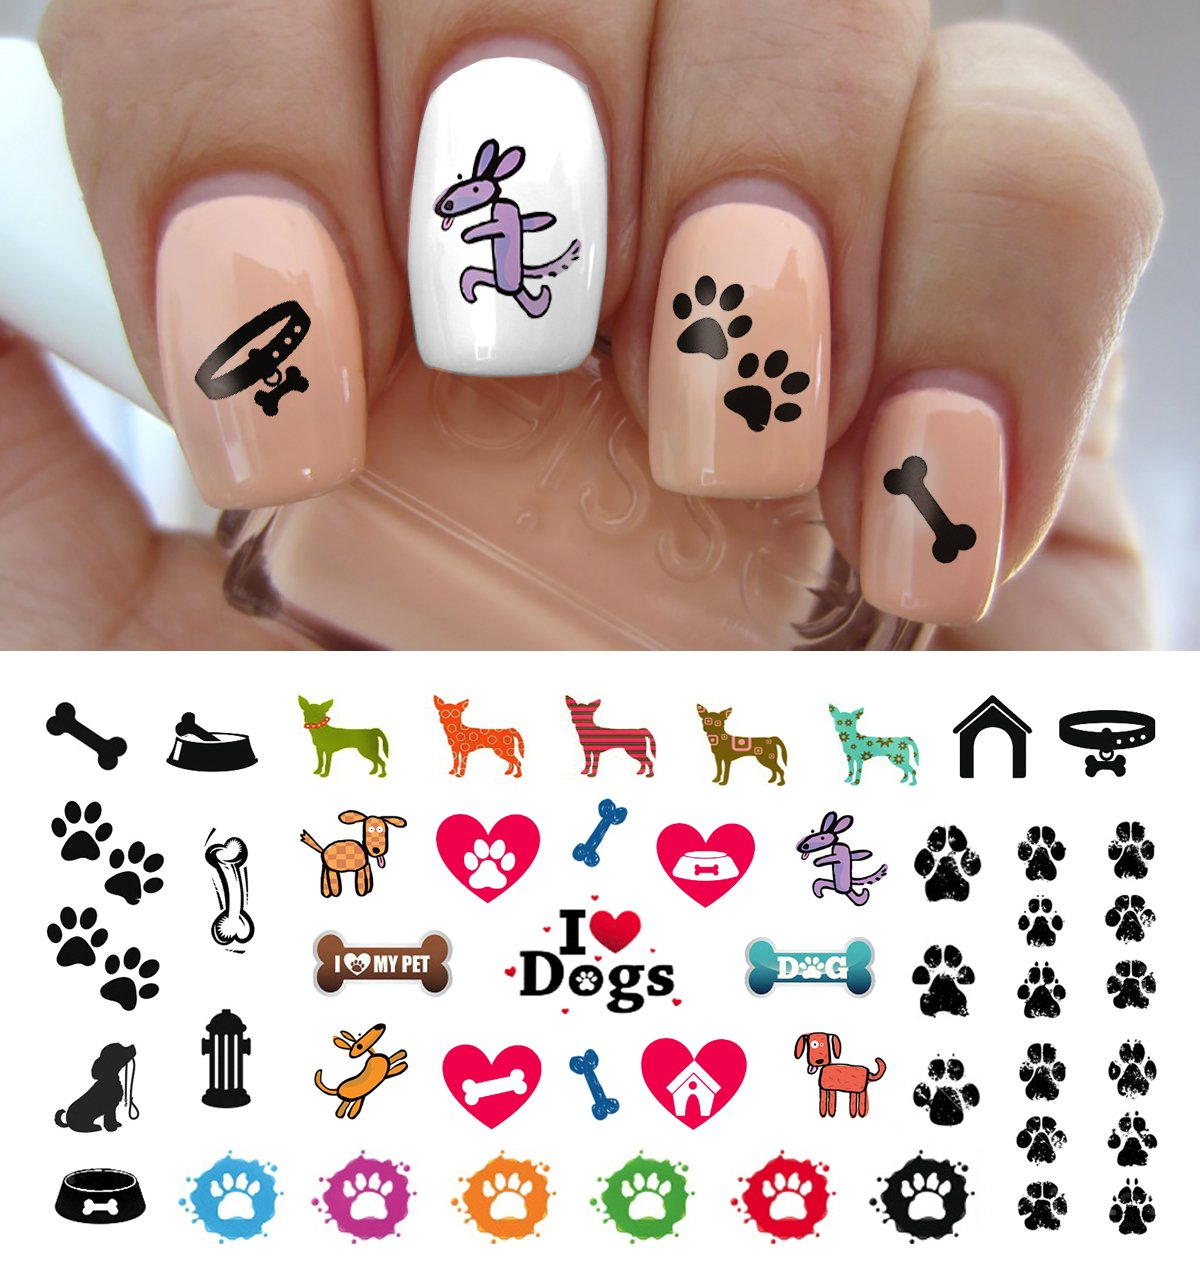 Amazon.com: Paw Prints Water Slide Nail Art Decals- Salon Quality ...